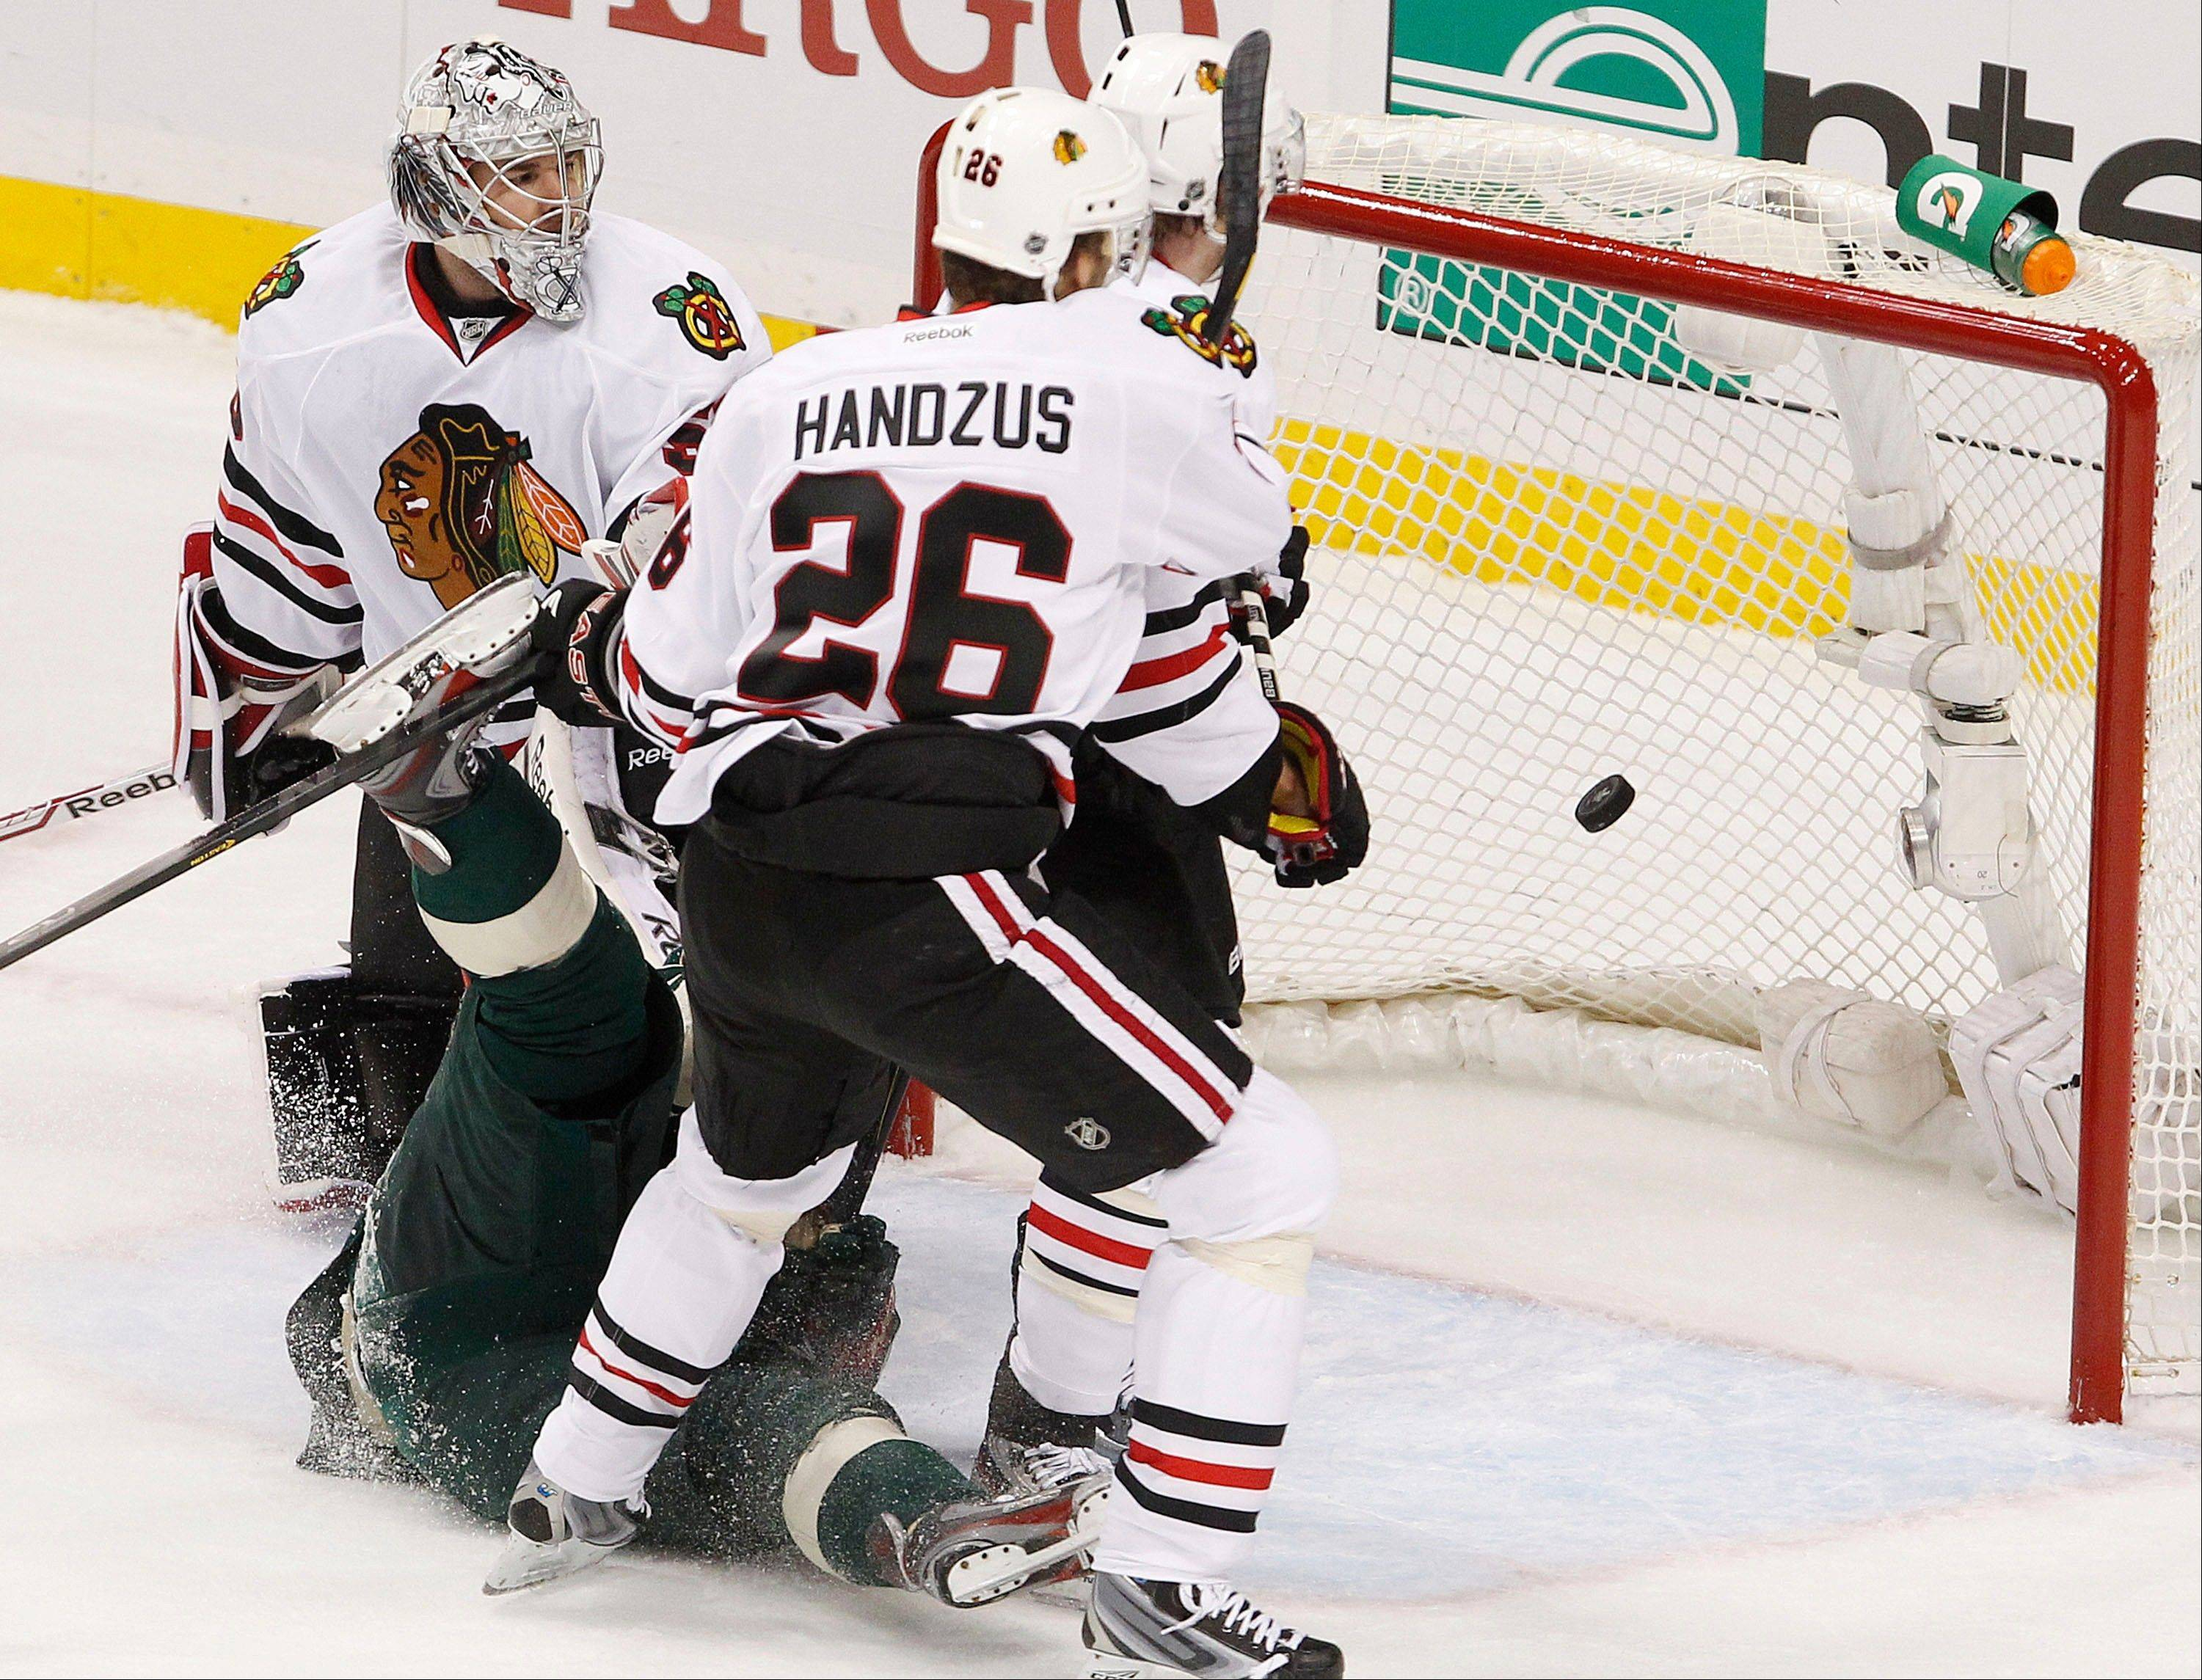 Chicago Blackhawks' Corey Crawford, left, and Michal Handzus watch as Minnesota Wild's Pierre-Marc Bouchard's goal goes into the net in the first period. Minnesota defeated the Blackhawks 3-2 on overtime.